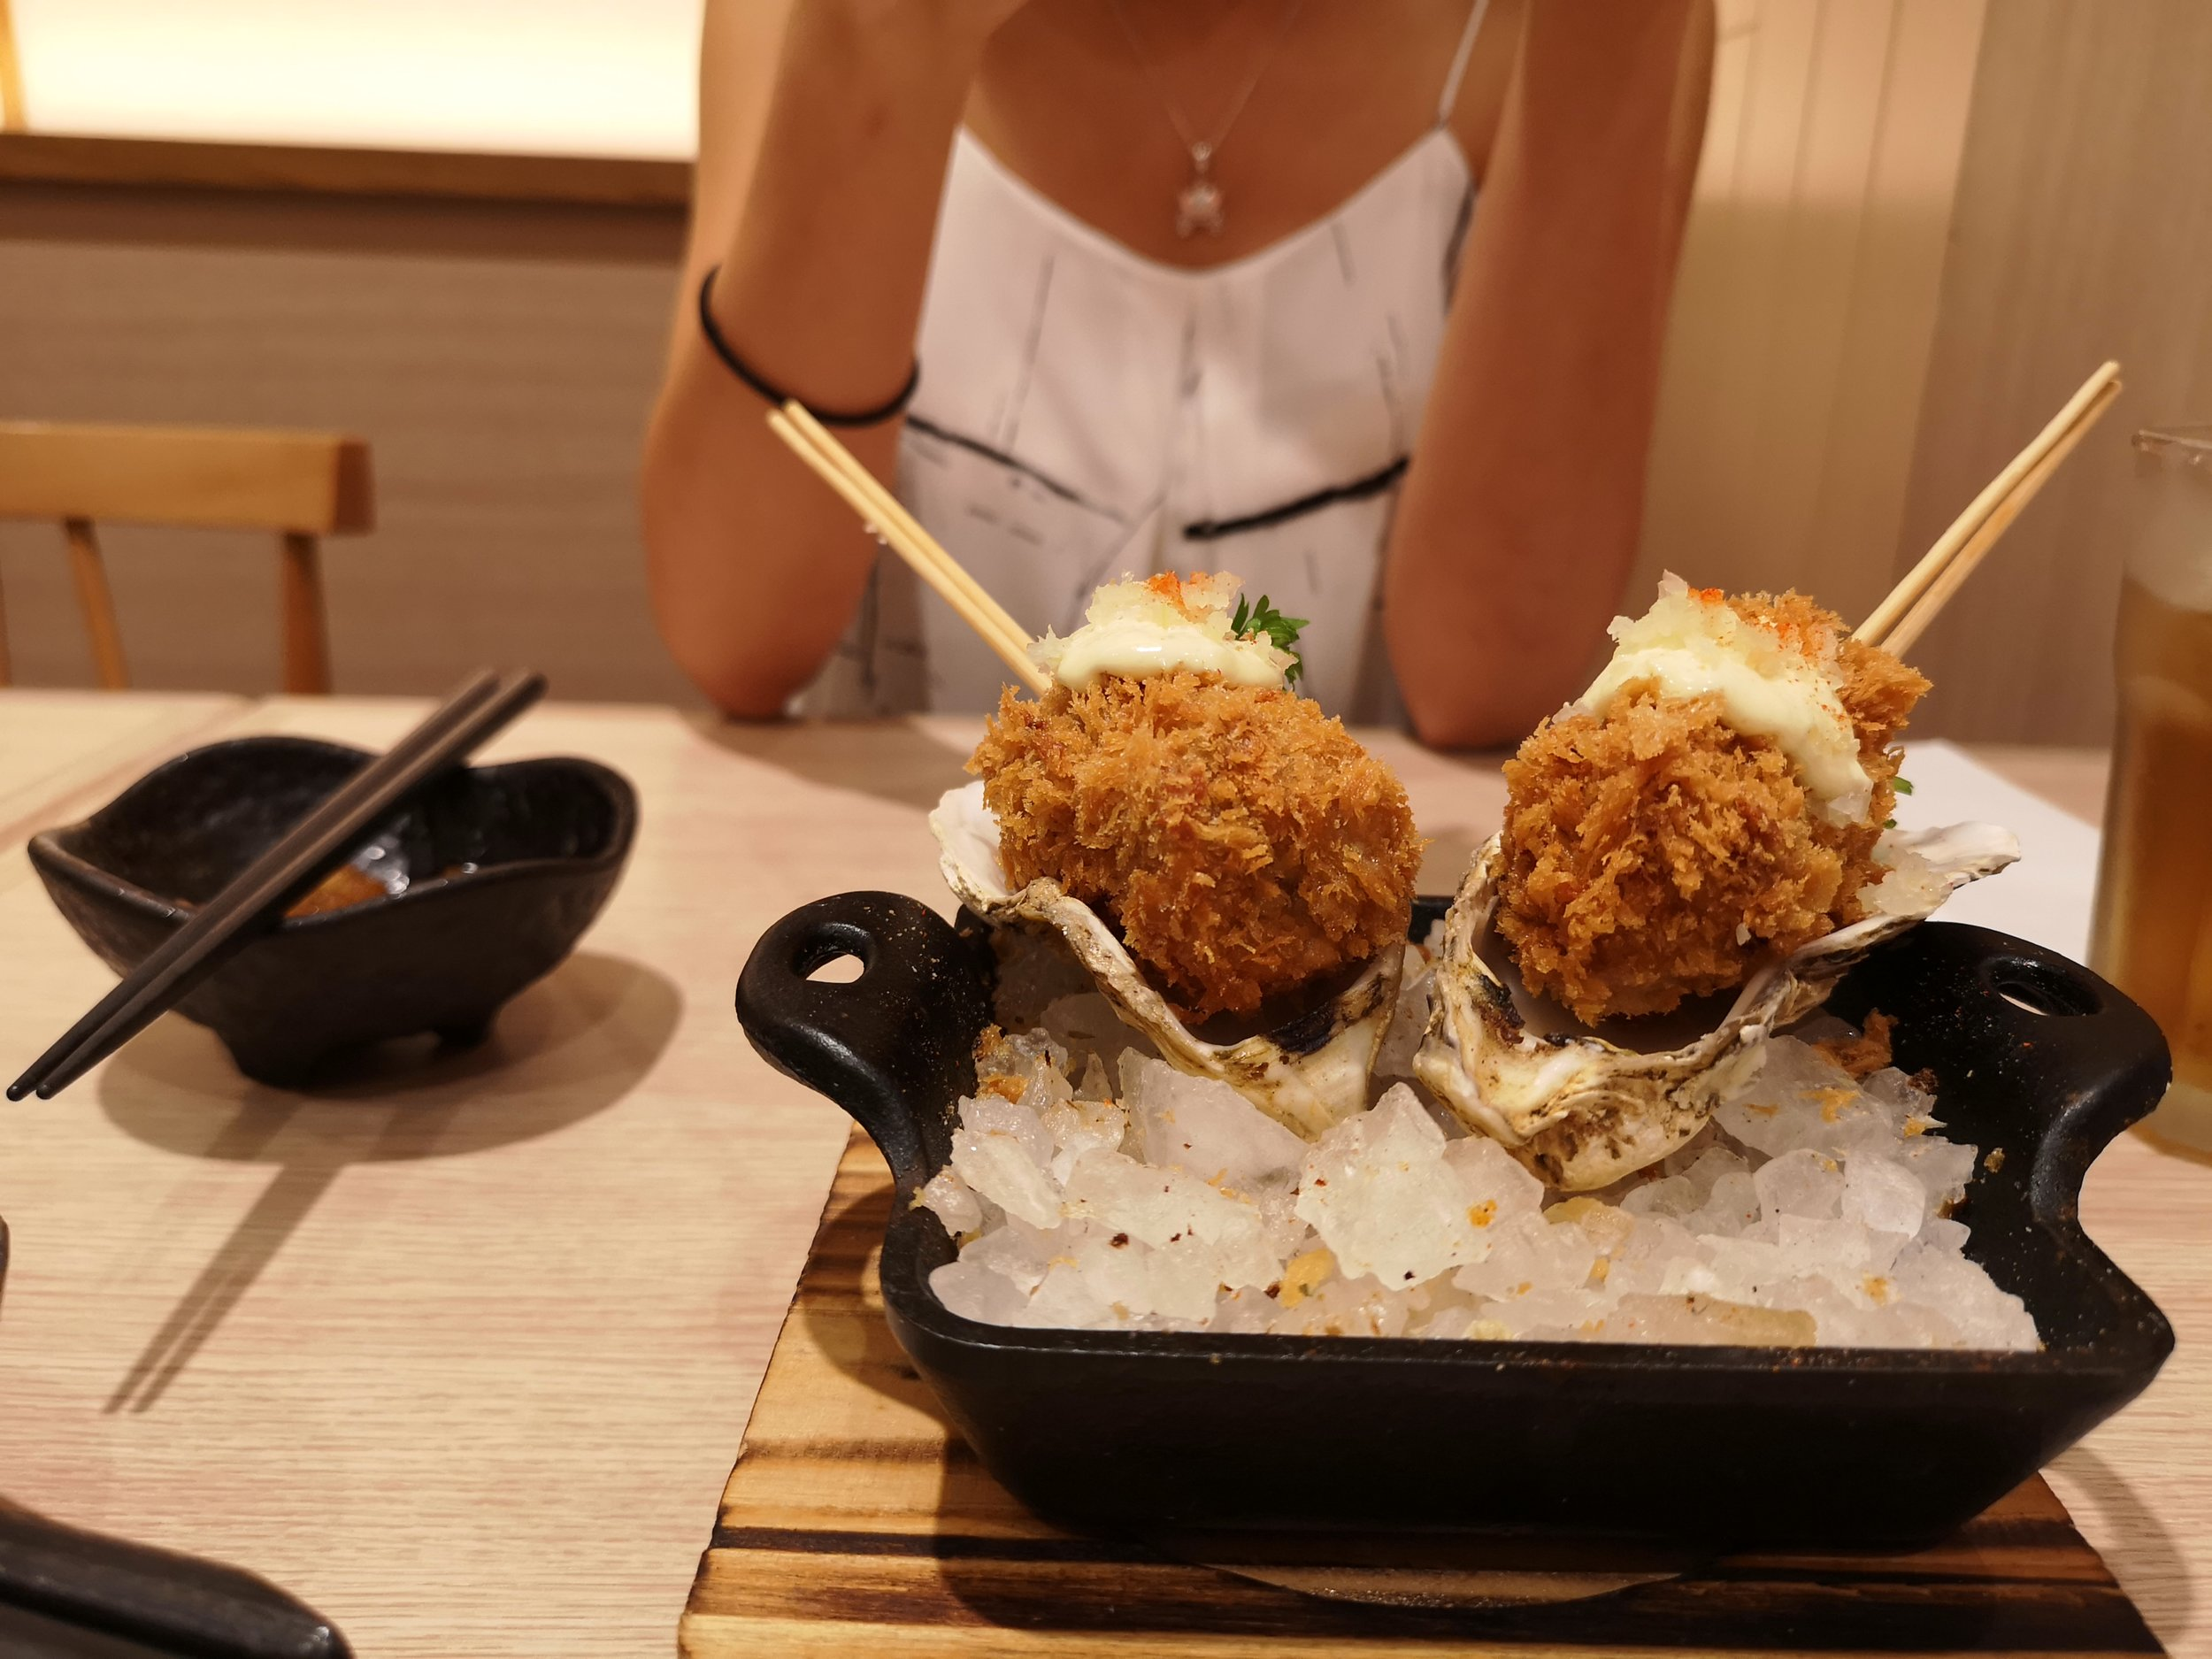 Oyster Skewers (Each for RM6.90)